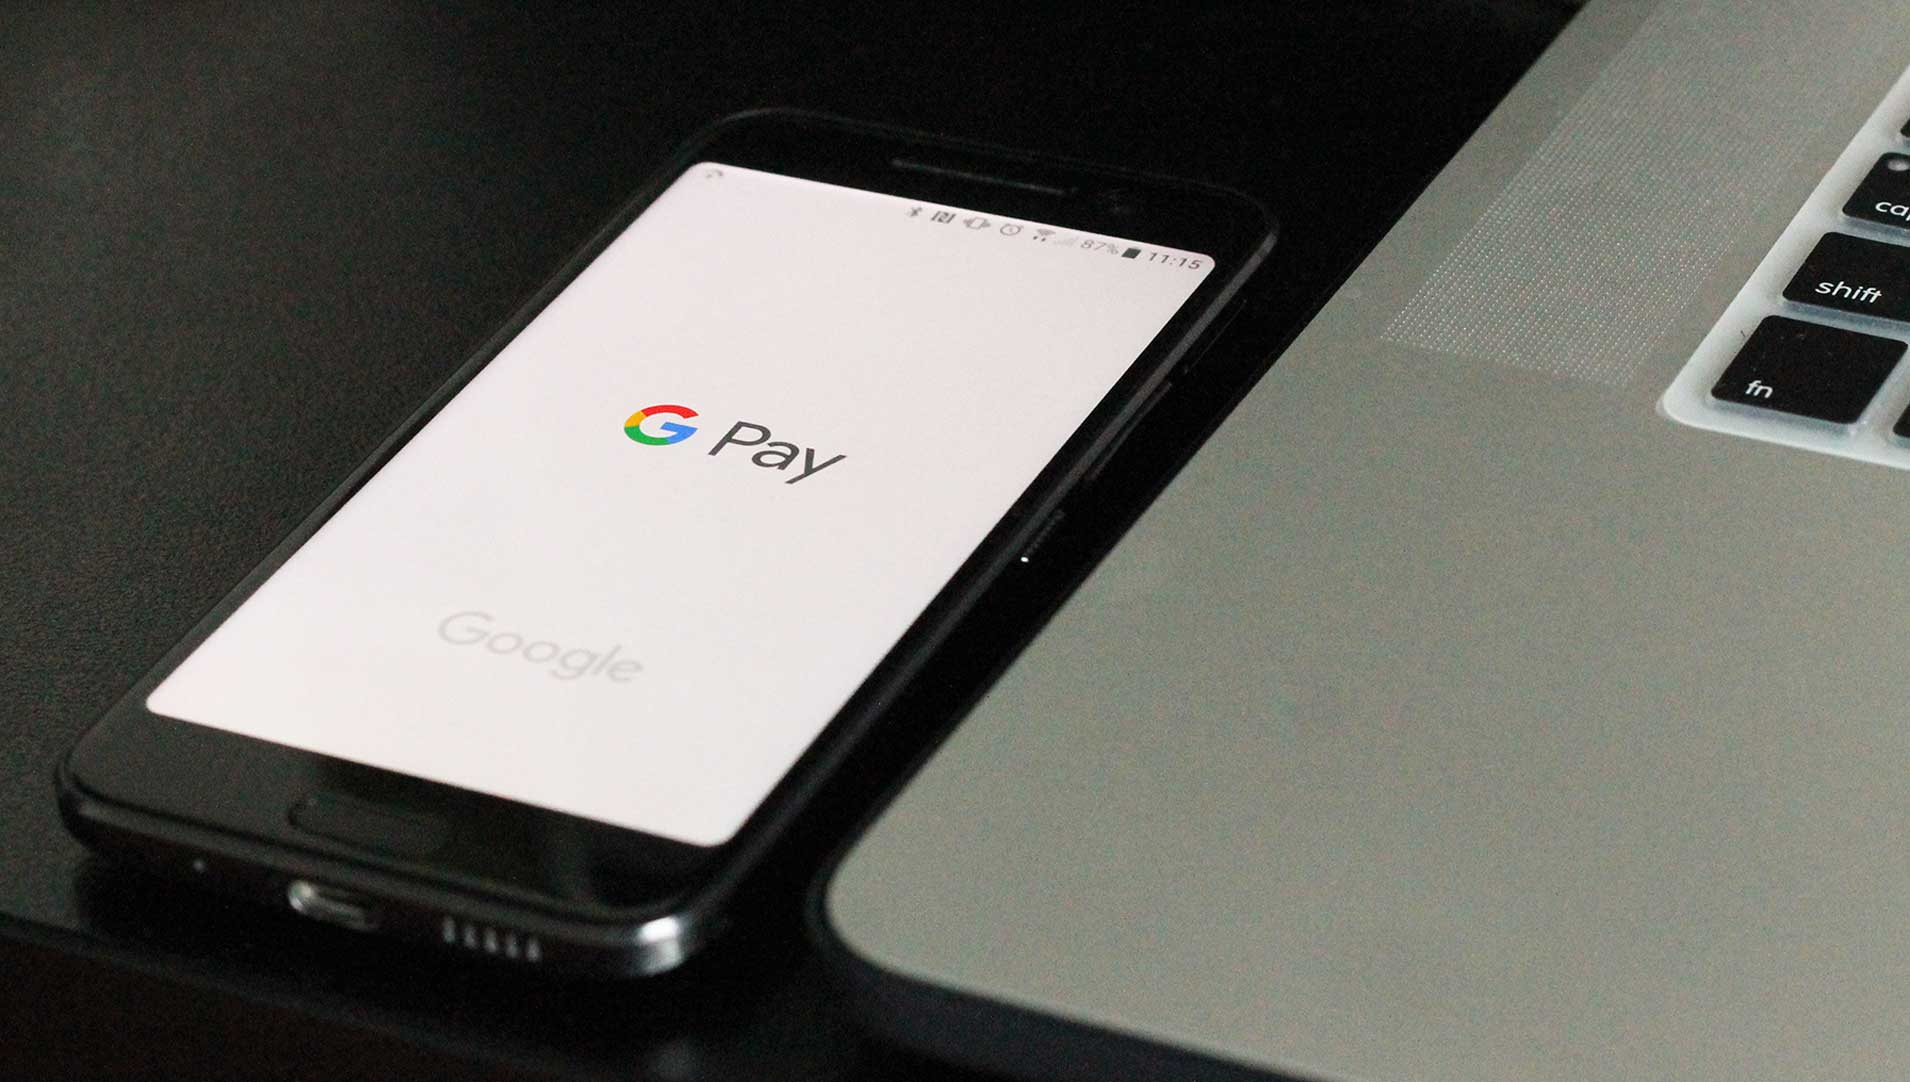 Google Pay is making inroads in Europe, along with Apple Pay